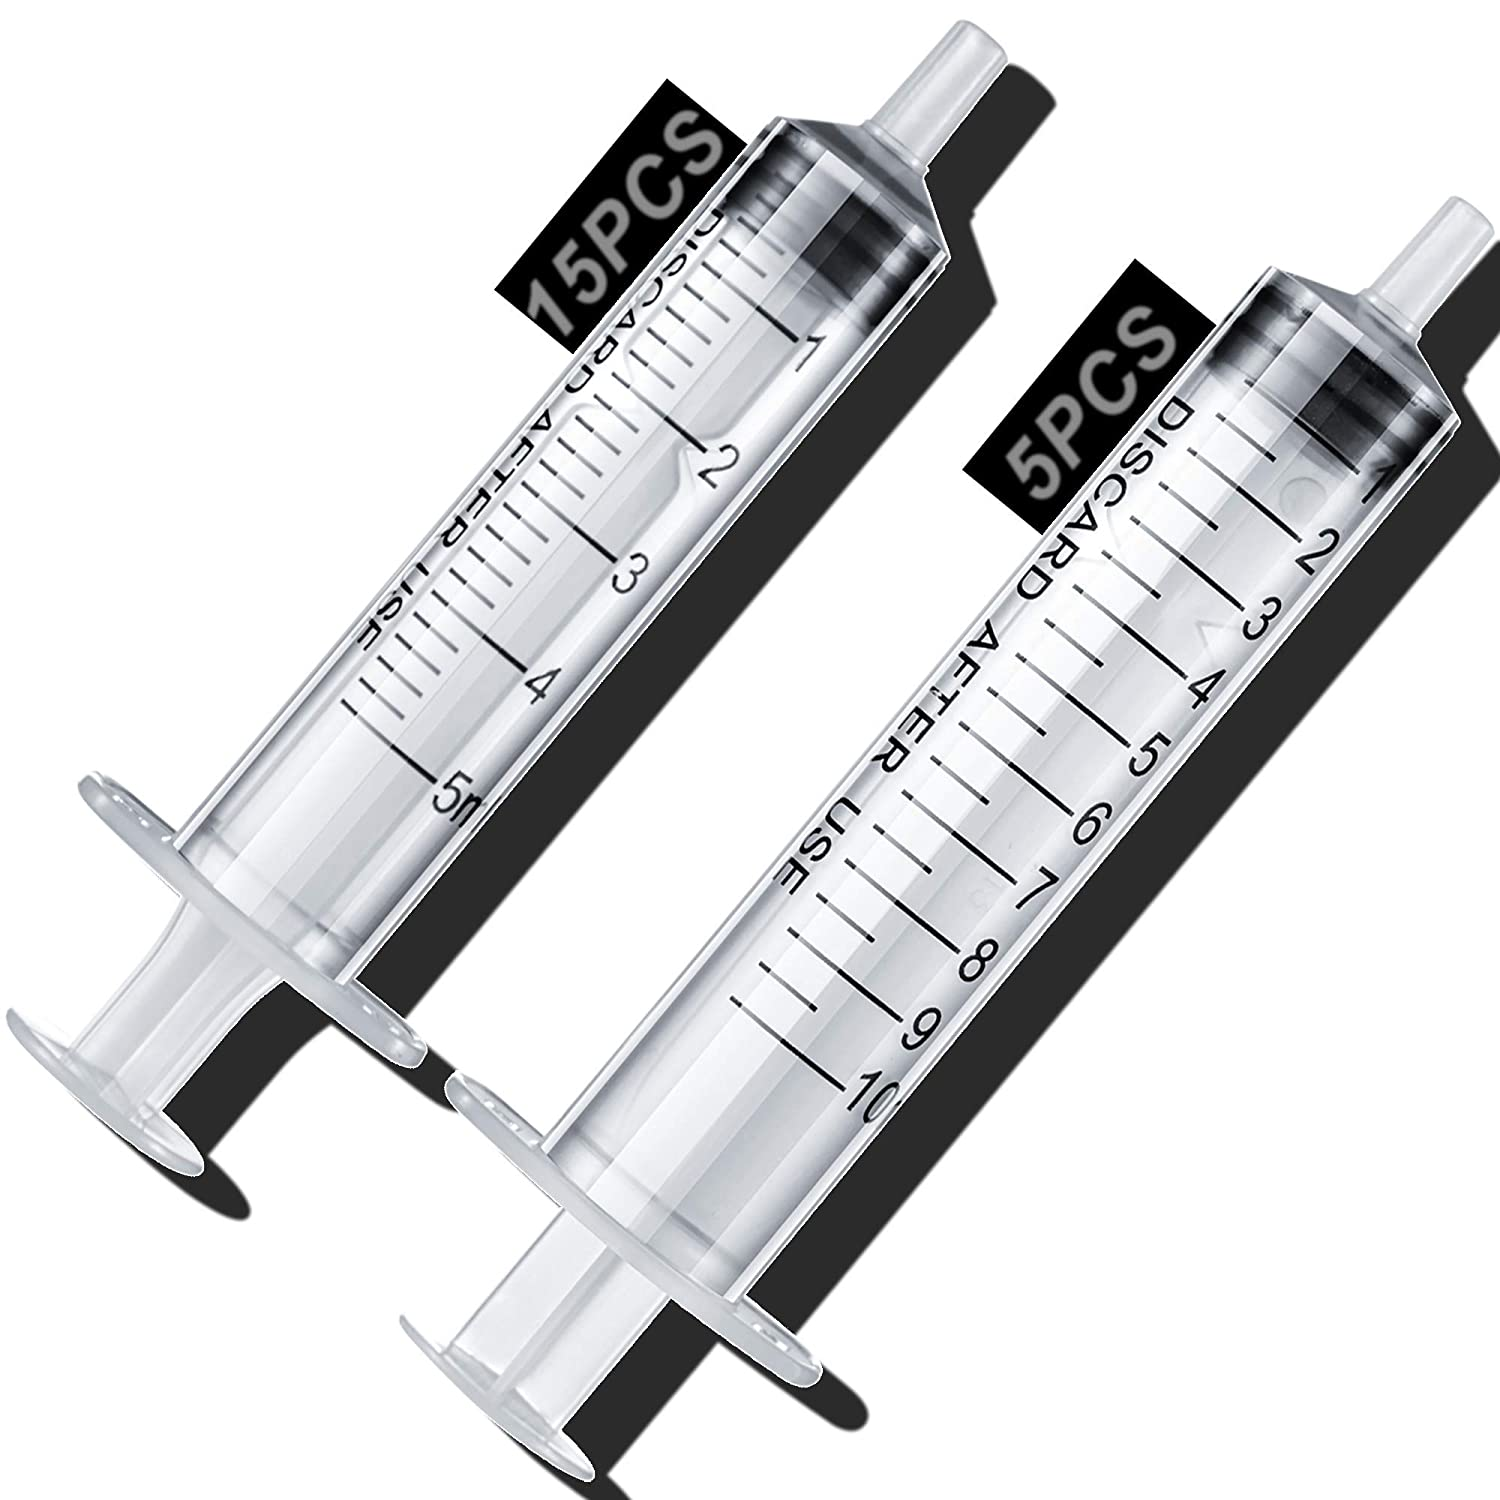 20 Pack Large Syringes, Large Plastic Garden Industrial Syringes for Scientific Labs, Measuring, Watering, Refilling, Filtration Multiple Uses (10ML,5ML)